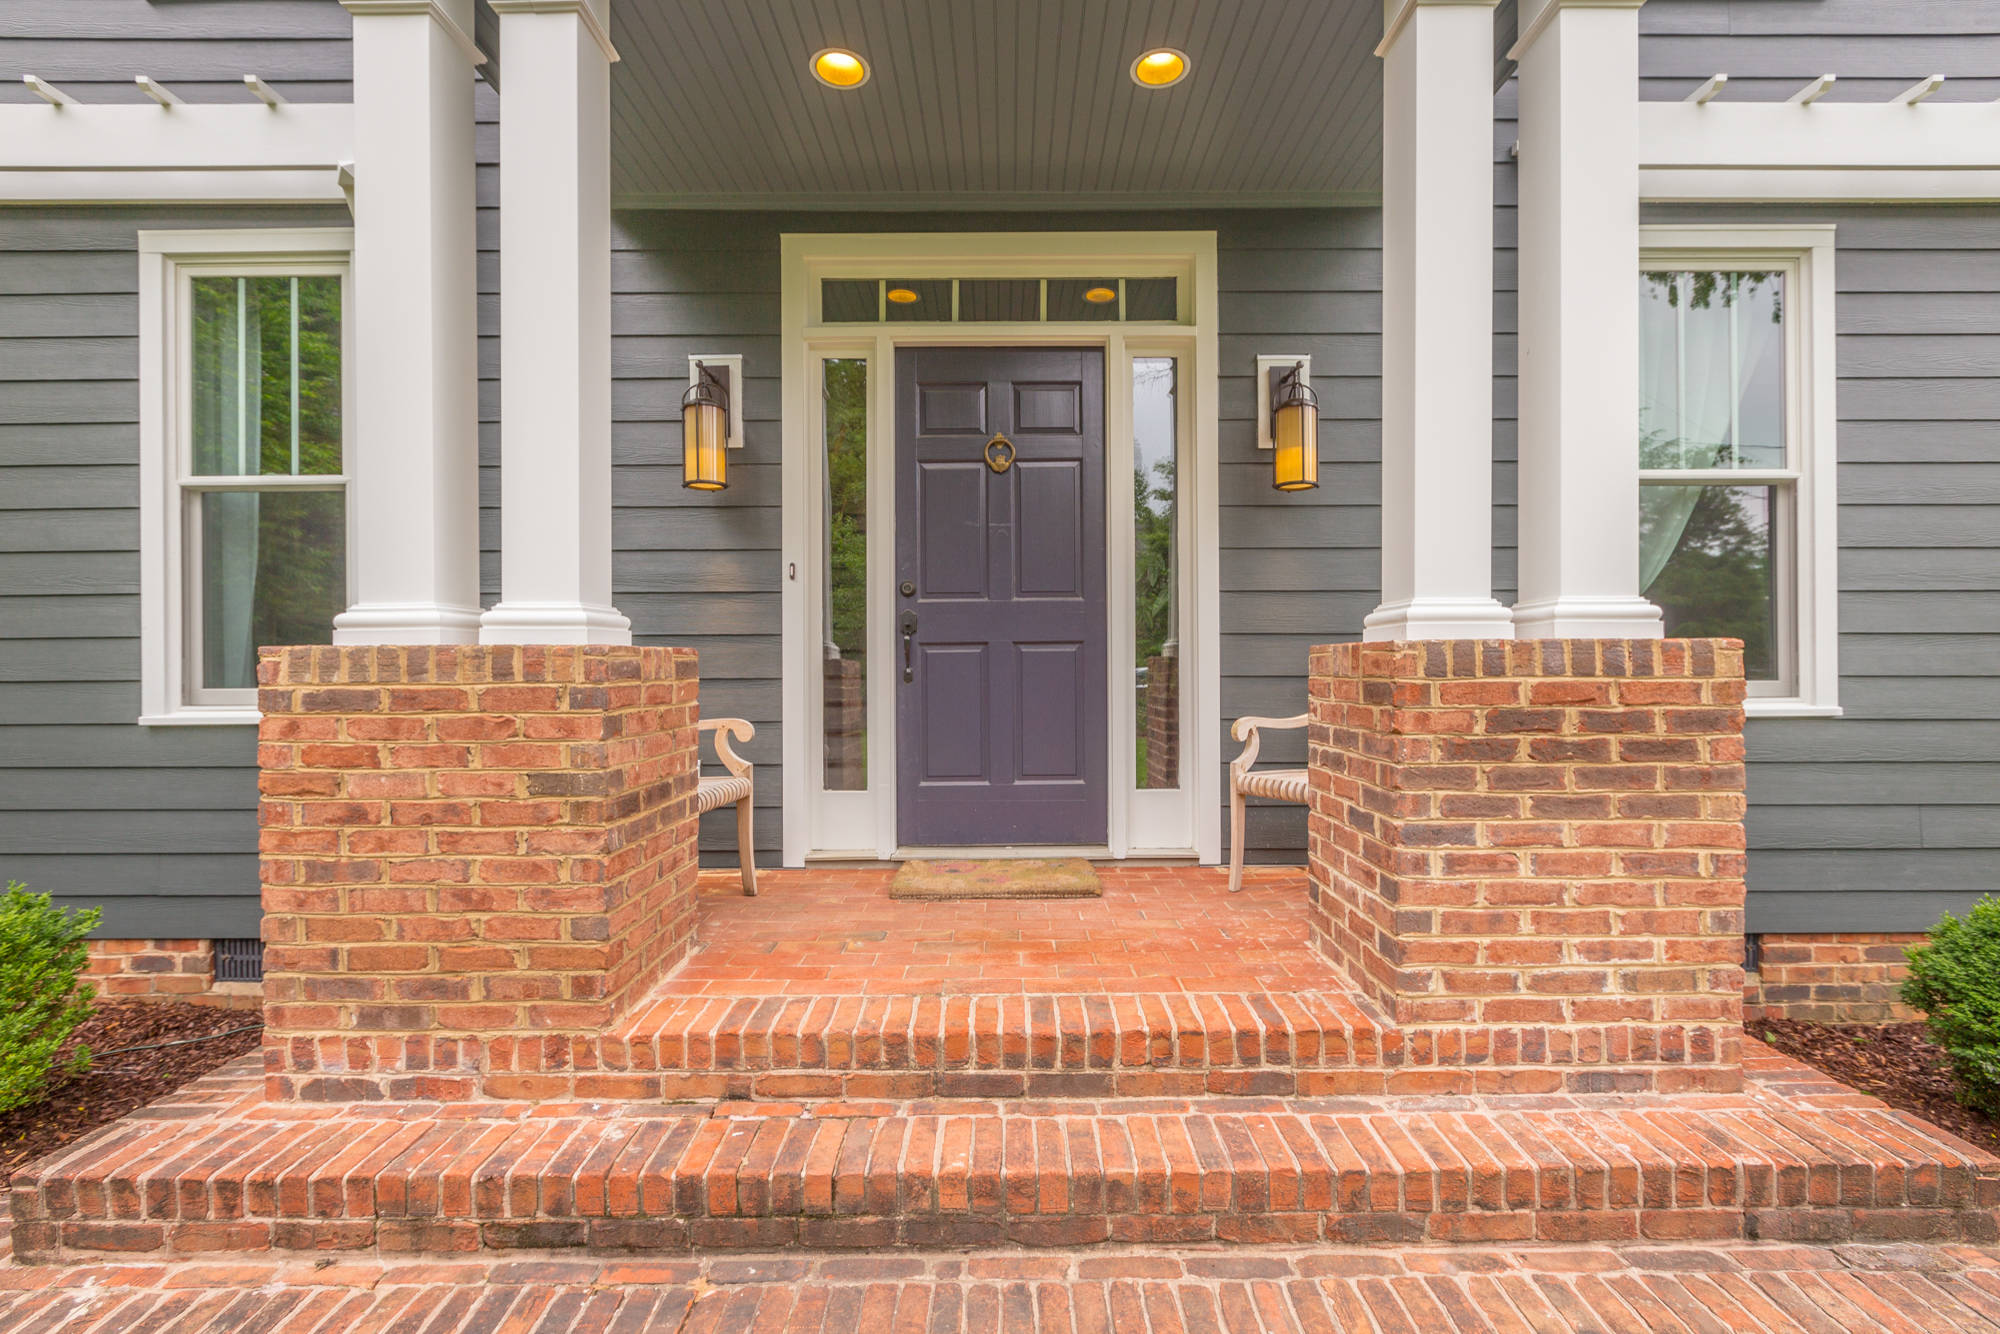 Front door colors for brick houses Traditional Entry pendant light portico shingle square columns white trim